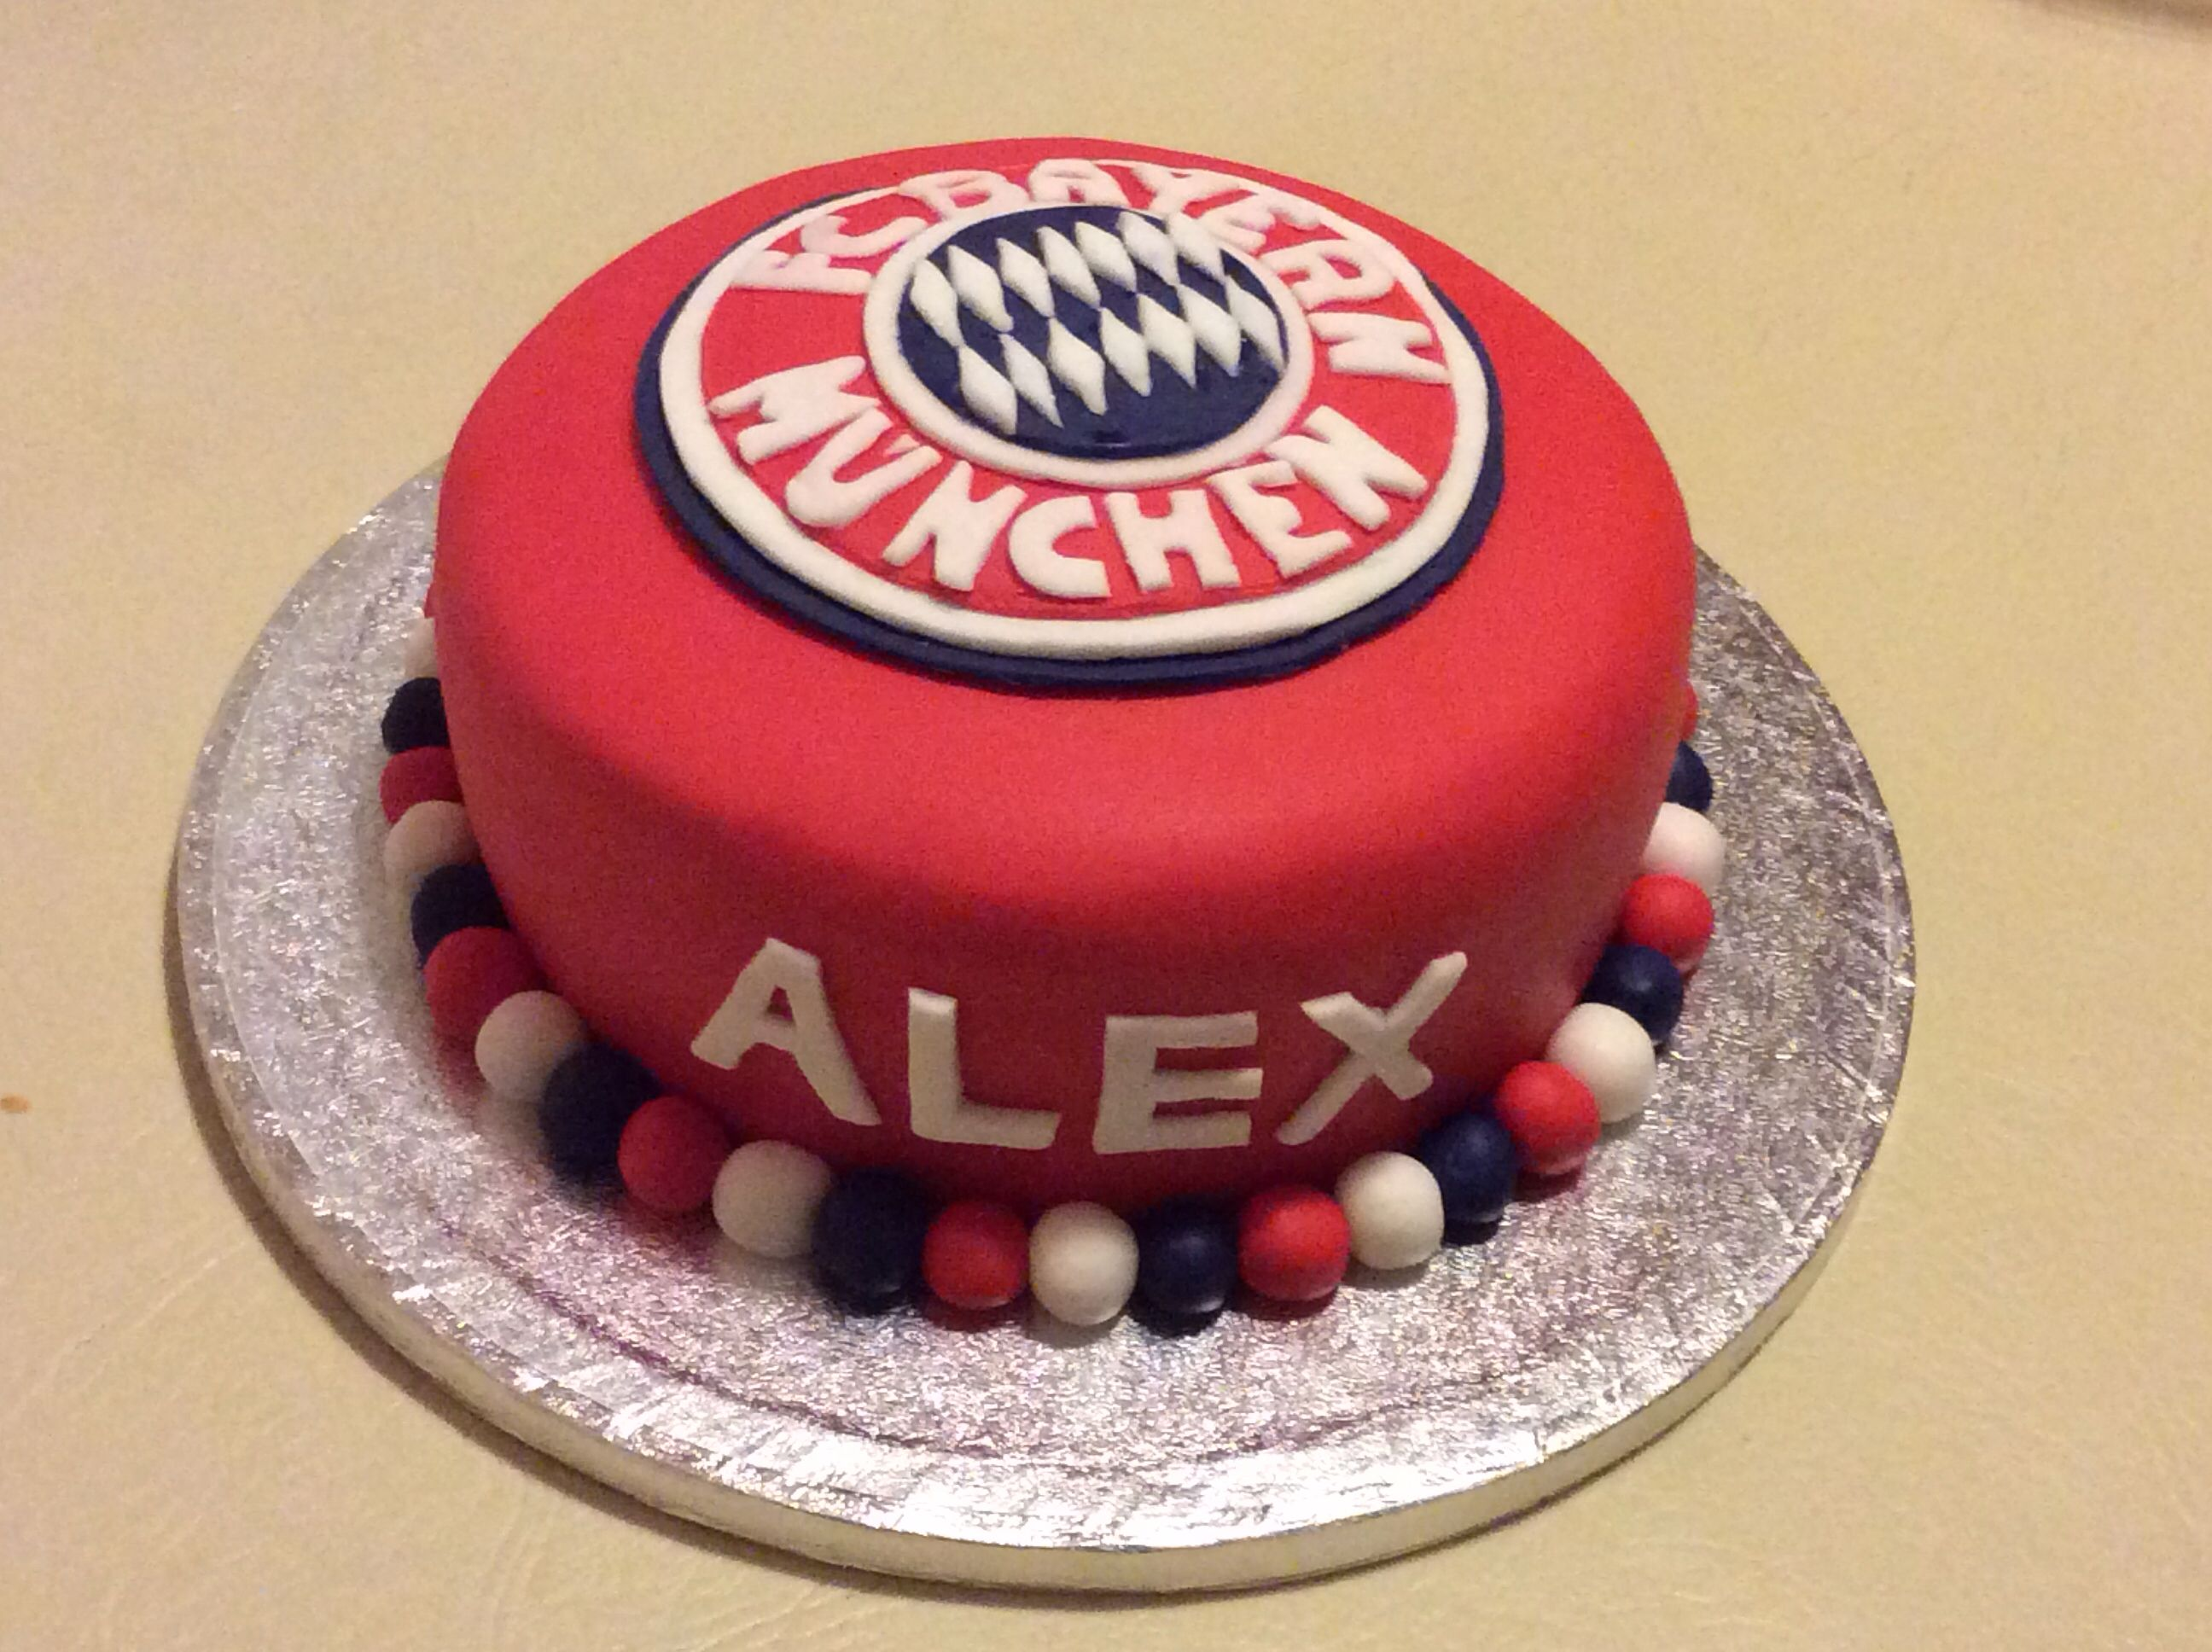 Bayern Munich Cake Cake Ideas Pinterest Bayern And Cake